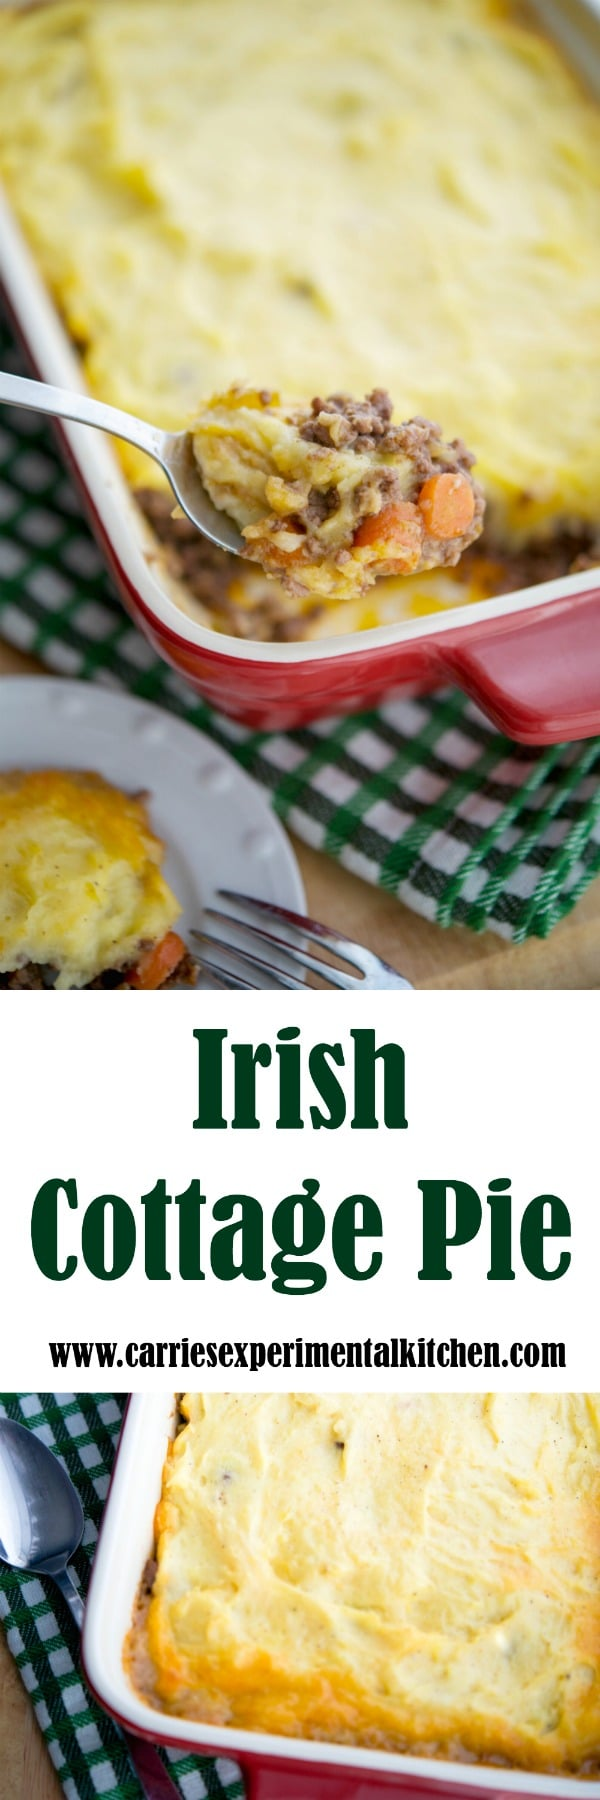 Whether you're celebrating St. Patrick's Day or just want a deliciously easy casserole dish, this Irish Cottage Pie made with ground beef and cheesy mashed potatoes will be a definite crowd pleaser. #beef #irish #casserole #stpatricksday